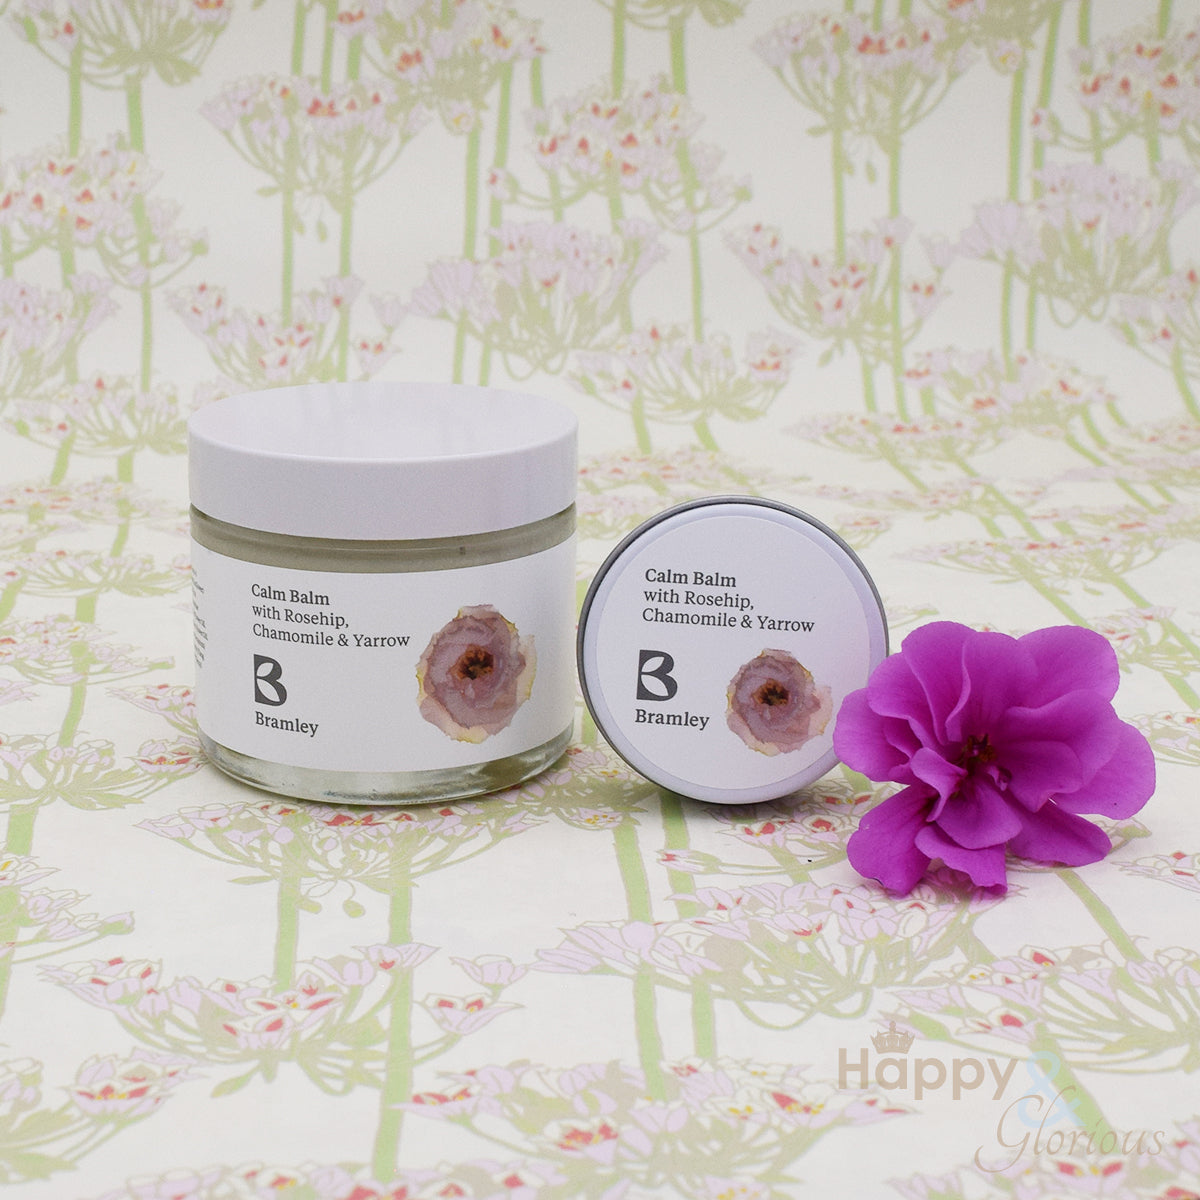 Calm Balm with rosehip, chamomile and yarrow by Bramley Products